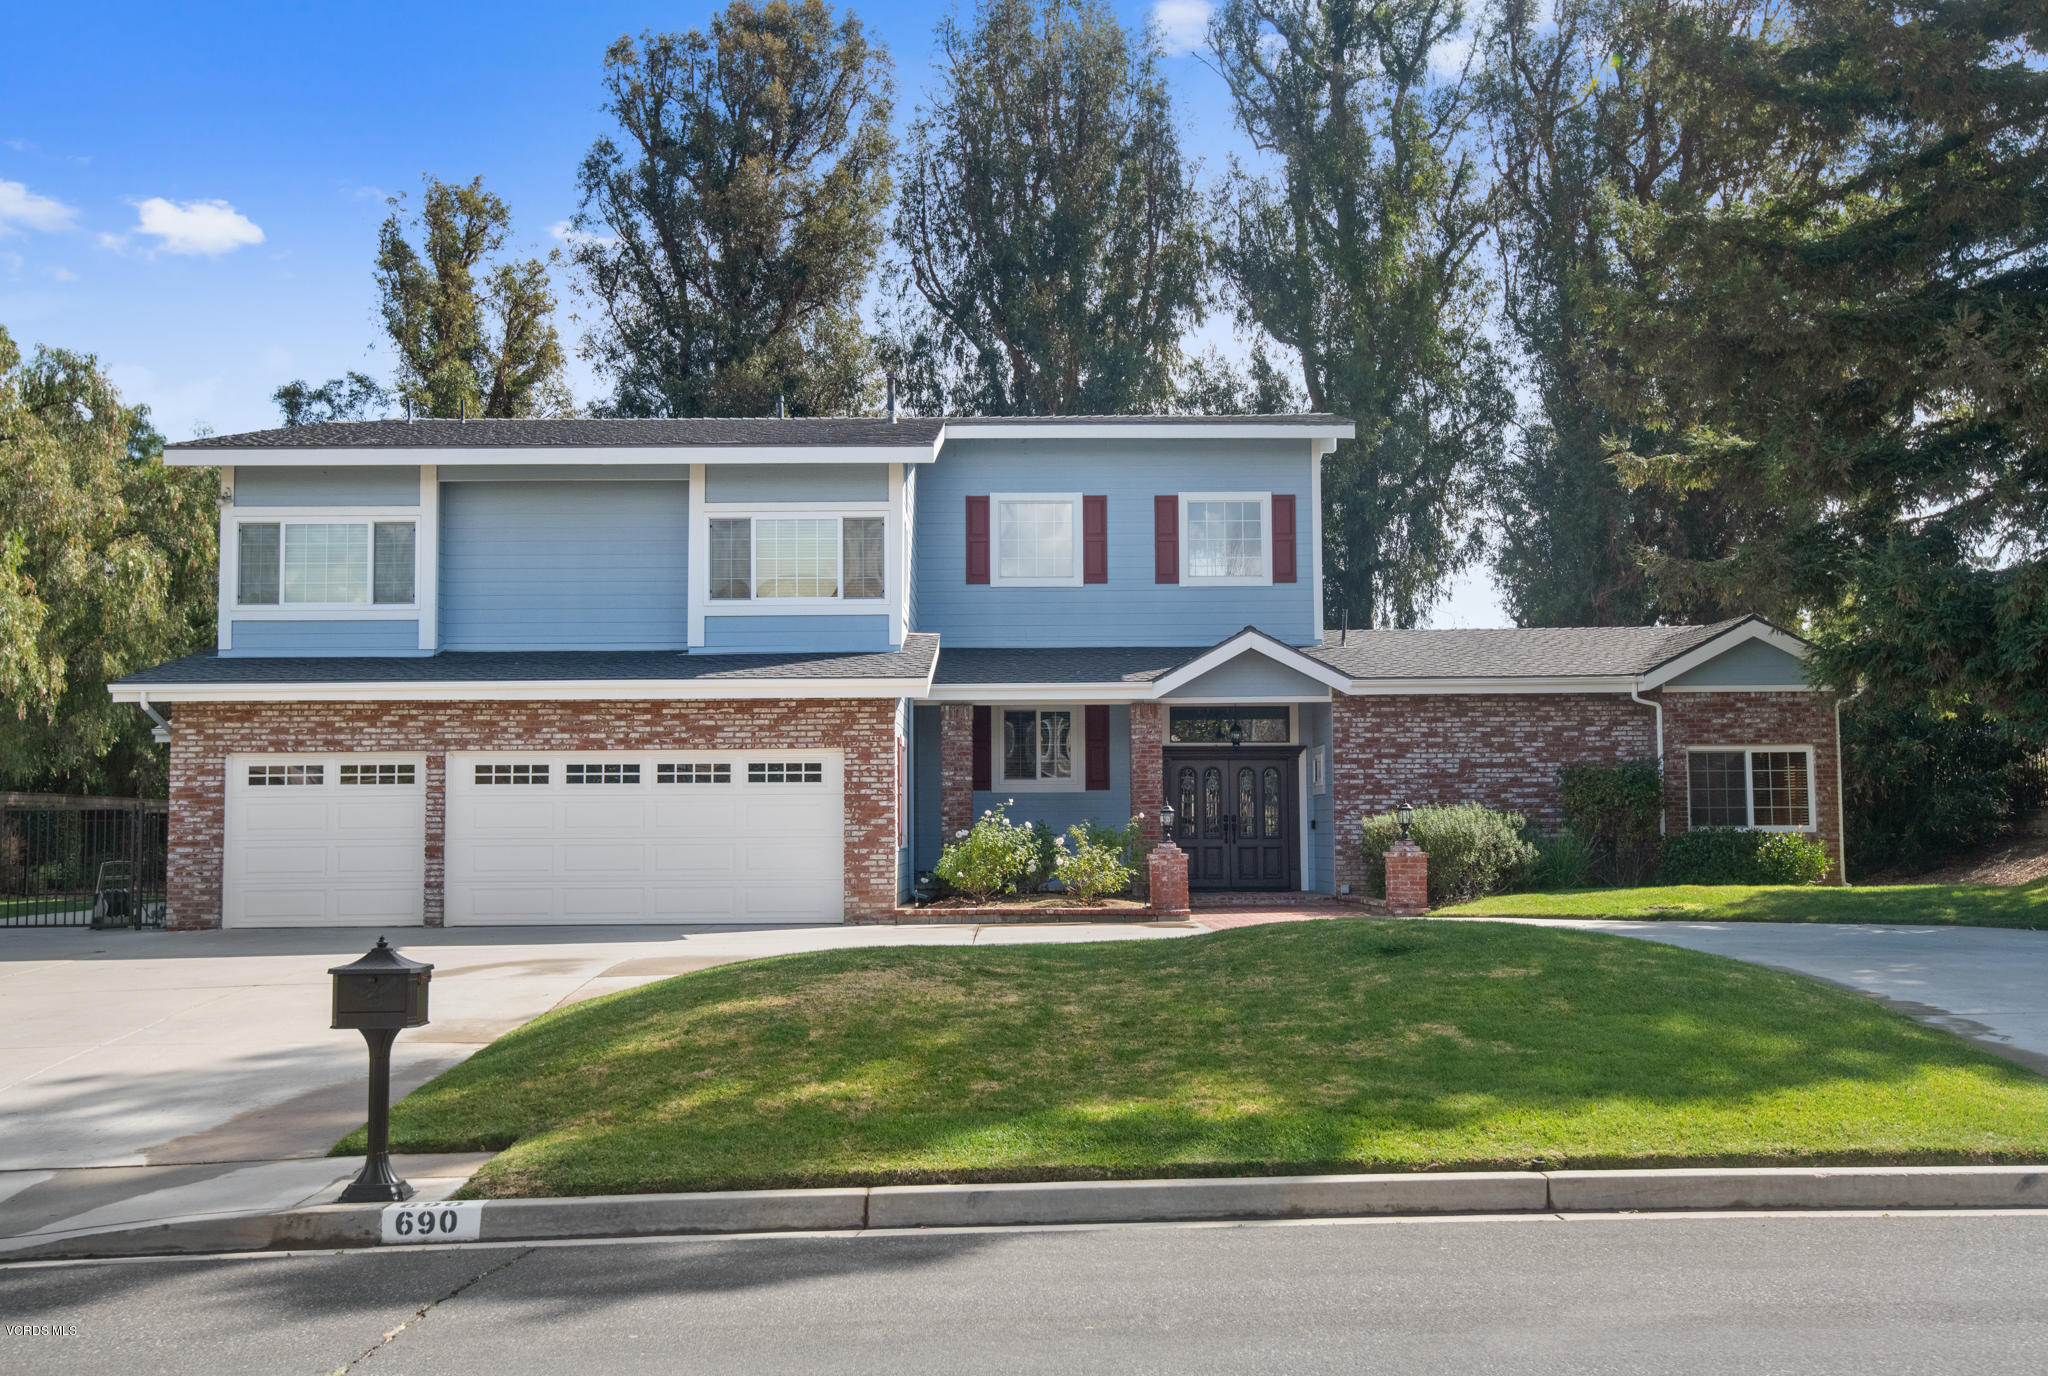 Photo of 690 Oldstone Place, Simi Valley, CA 93065